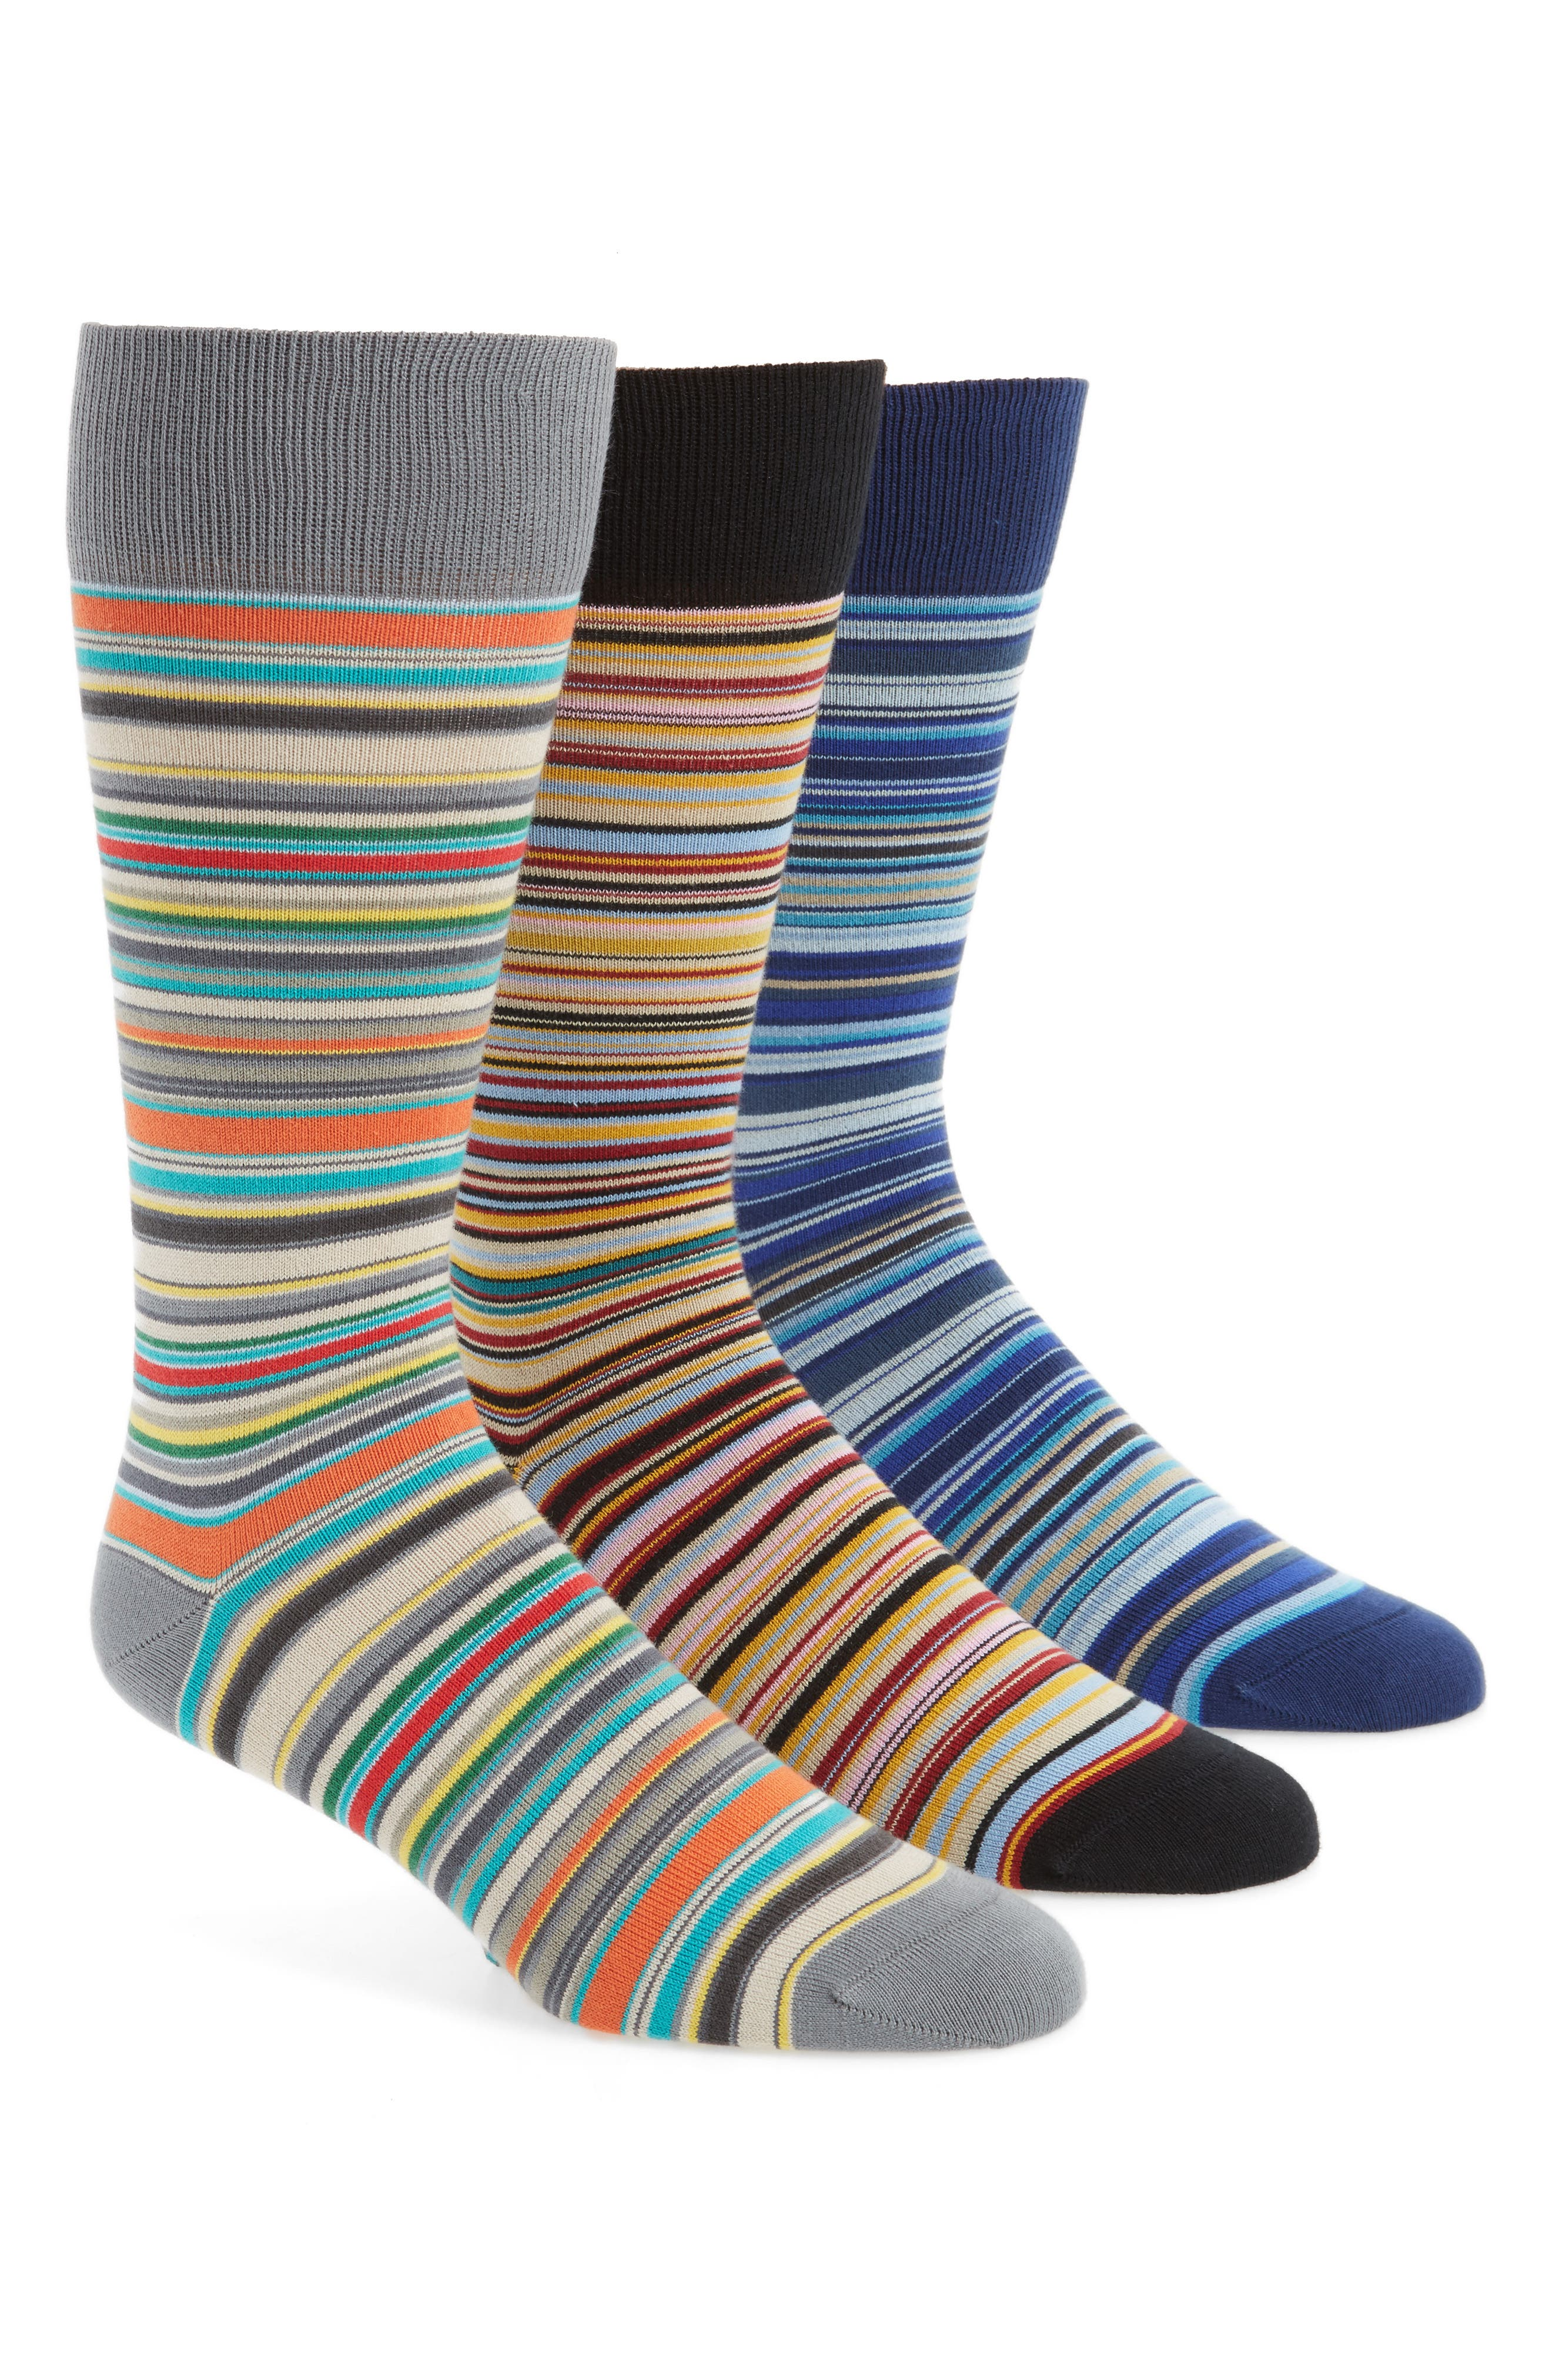 Paul Smith 3-Pack Mixed Pattern Socks ($90 Value)